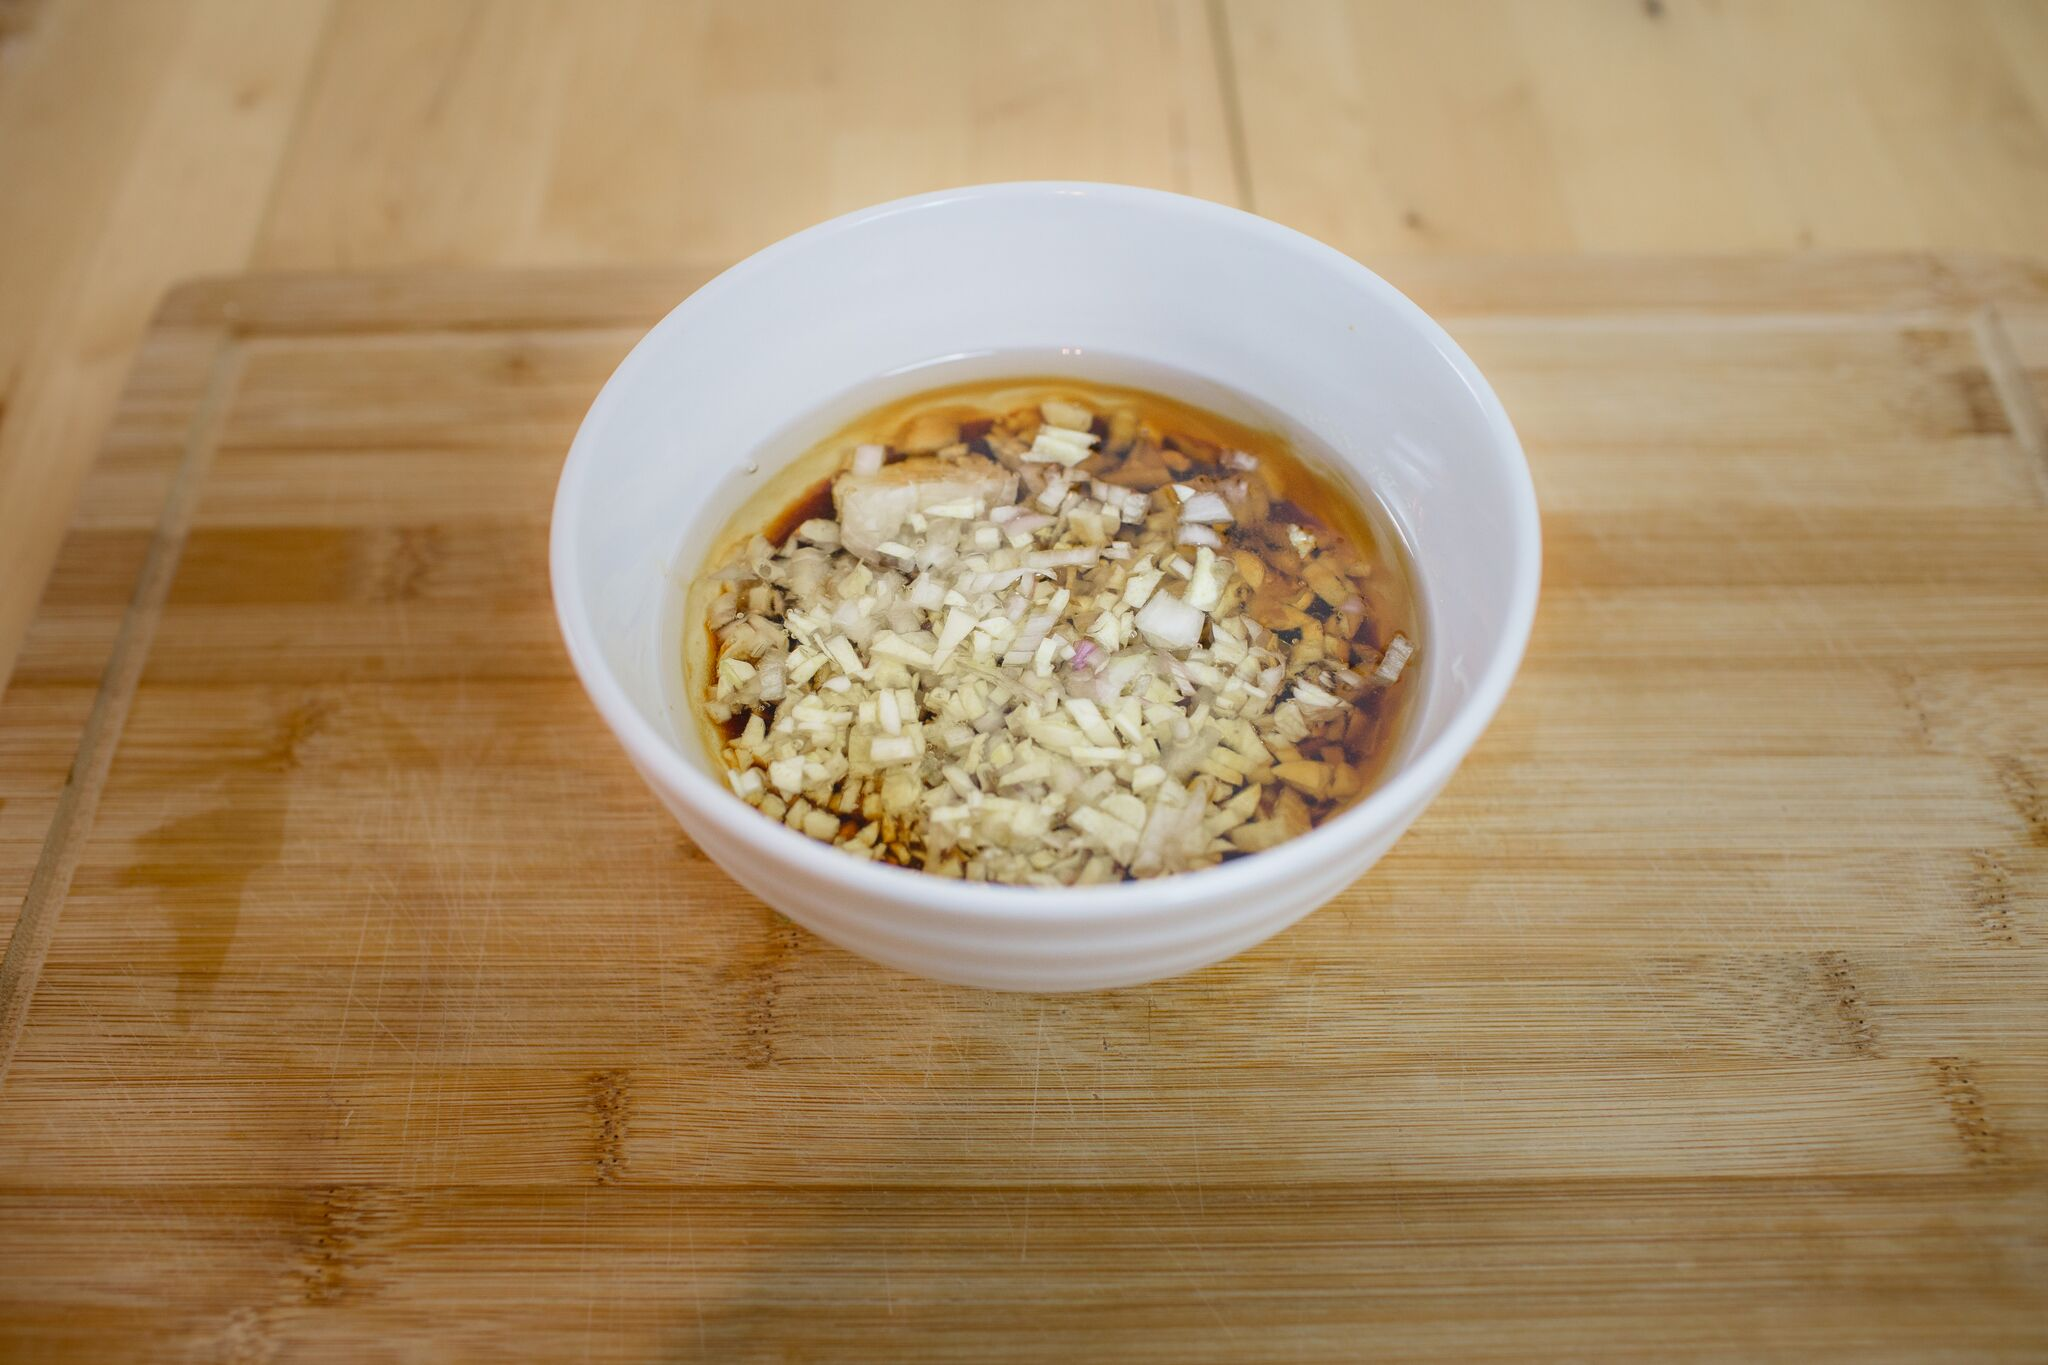 In a large bowl combine the fish sauce, soy sauce, sugar, pepper, sesame seed oil, vegetable oil, shallot and garlic.